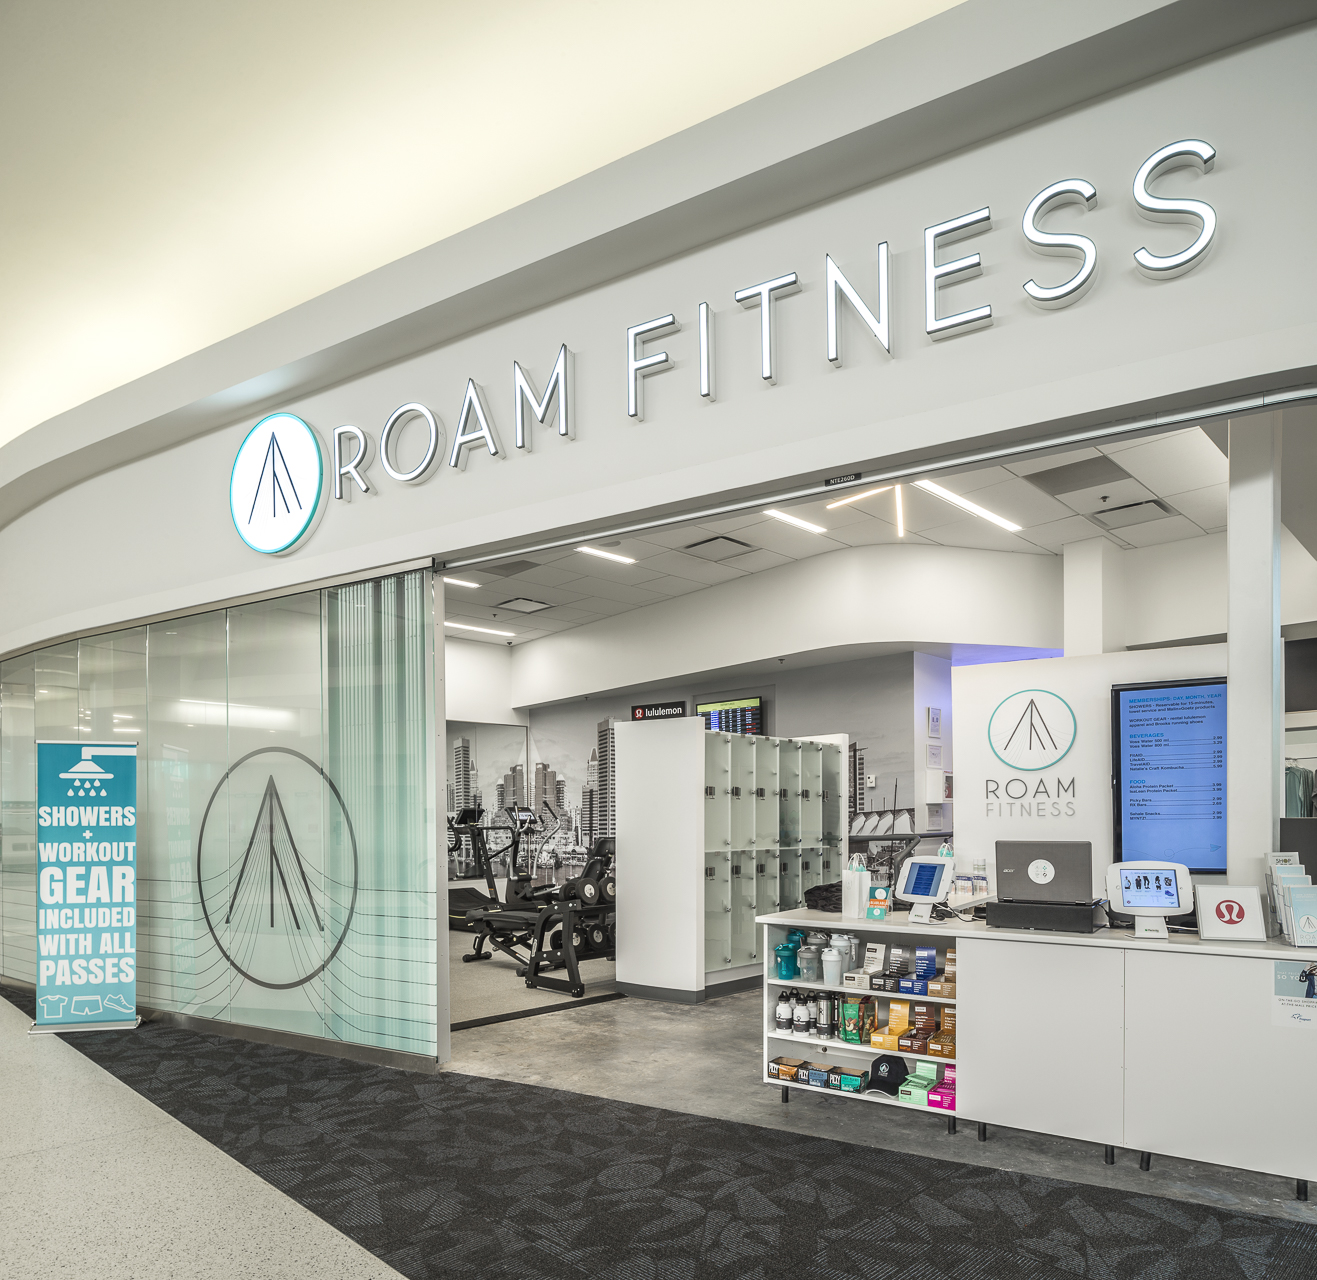 Stay fit even during travel days with a visit to RoamFitness. (Image: Courtesy RoamFitness)